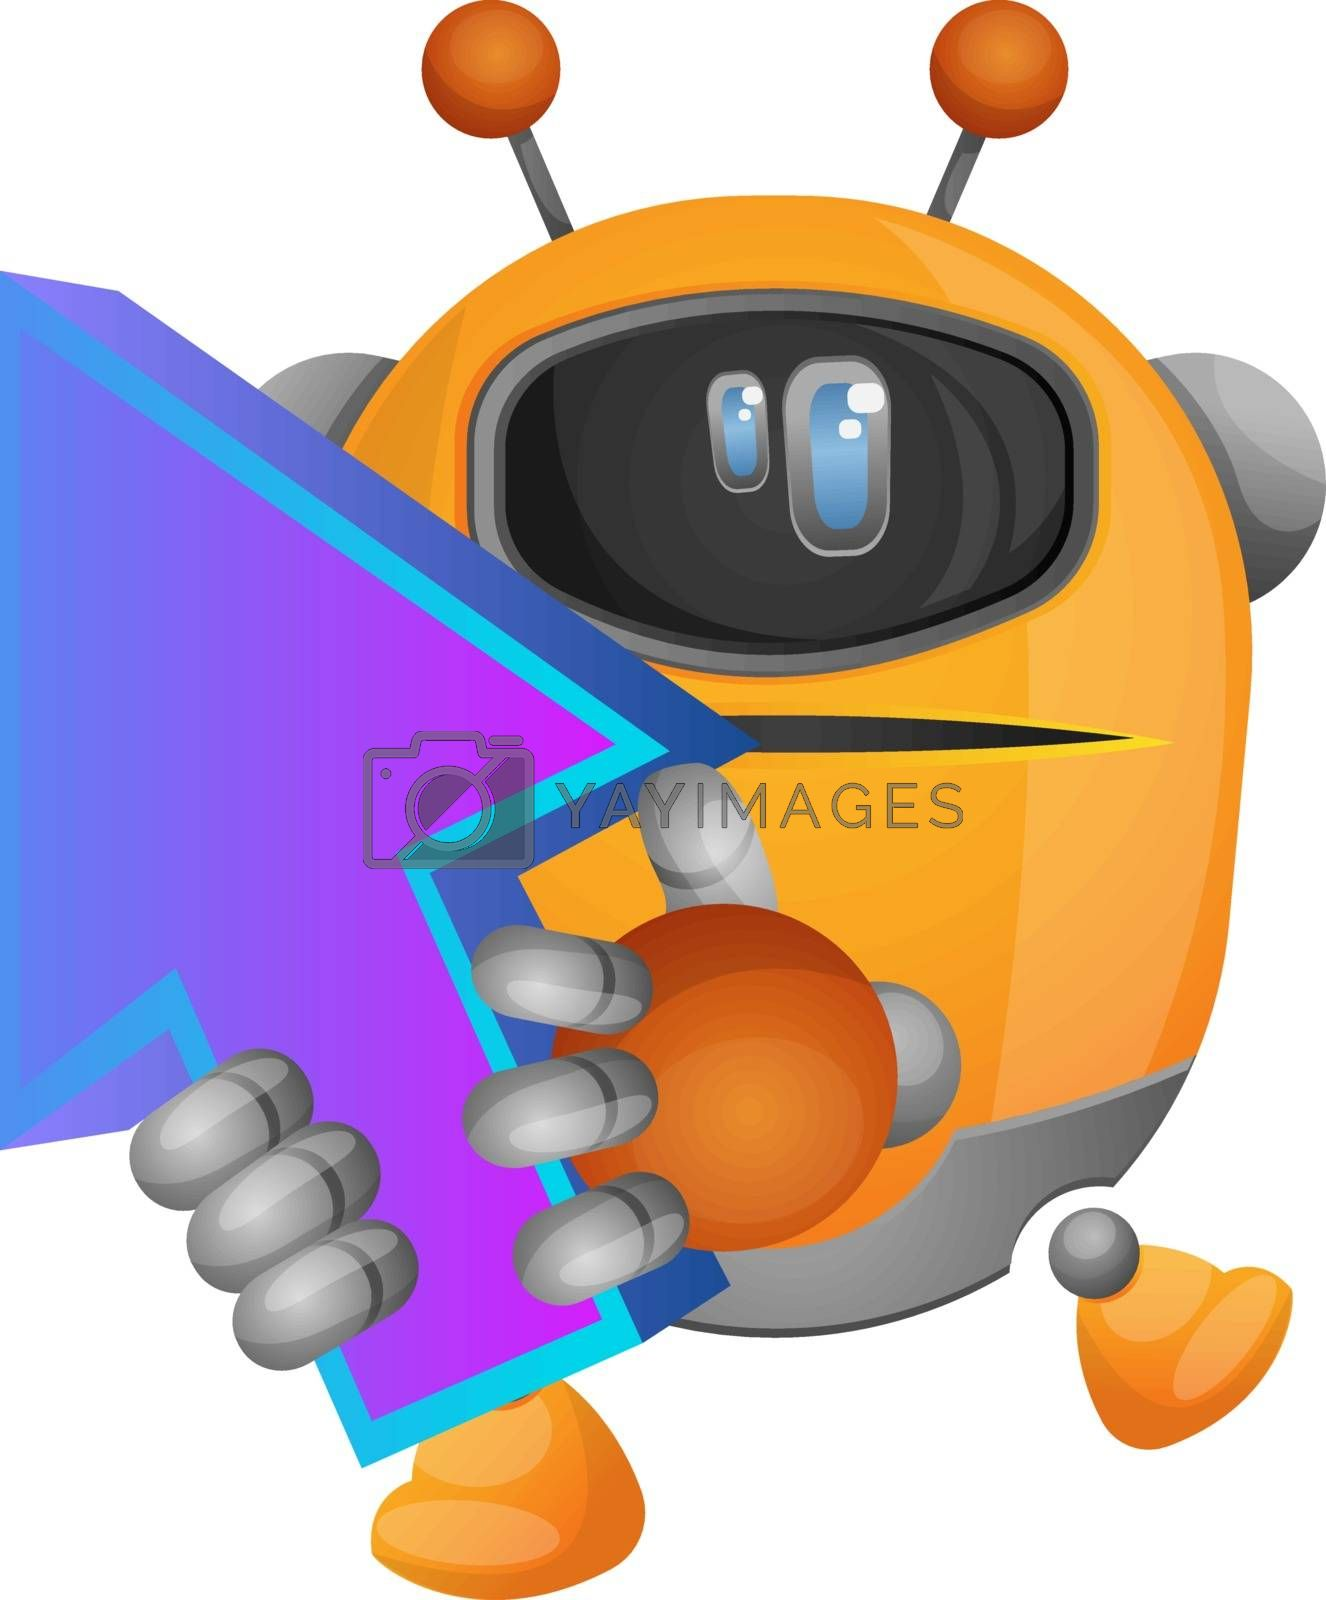 Royalty free image of Cartoon robot holding arrow up illustration vector on white back by Morphart